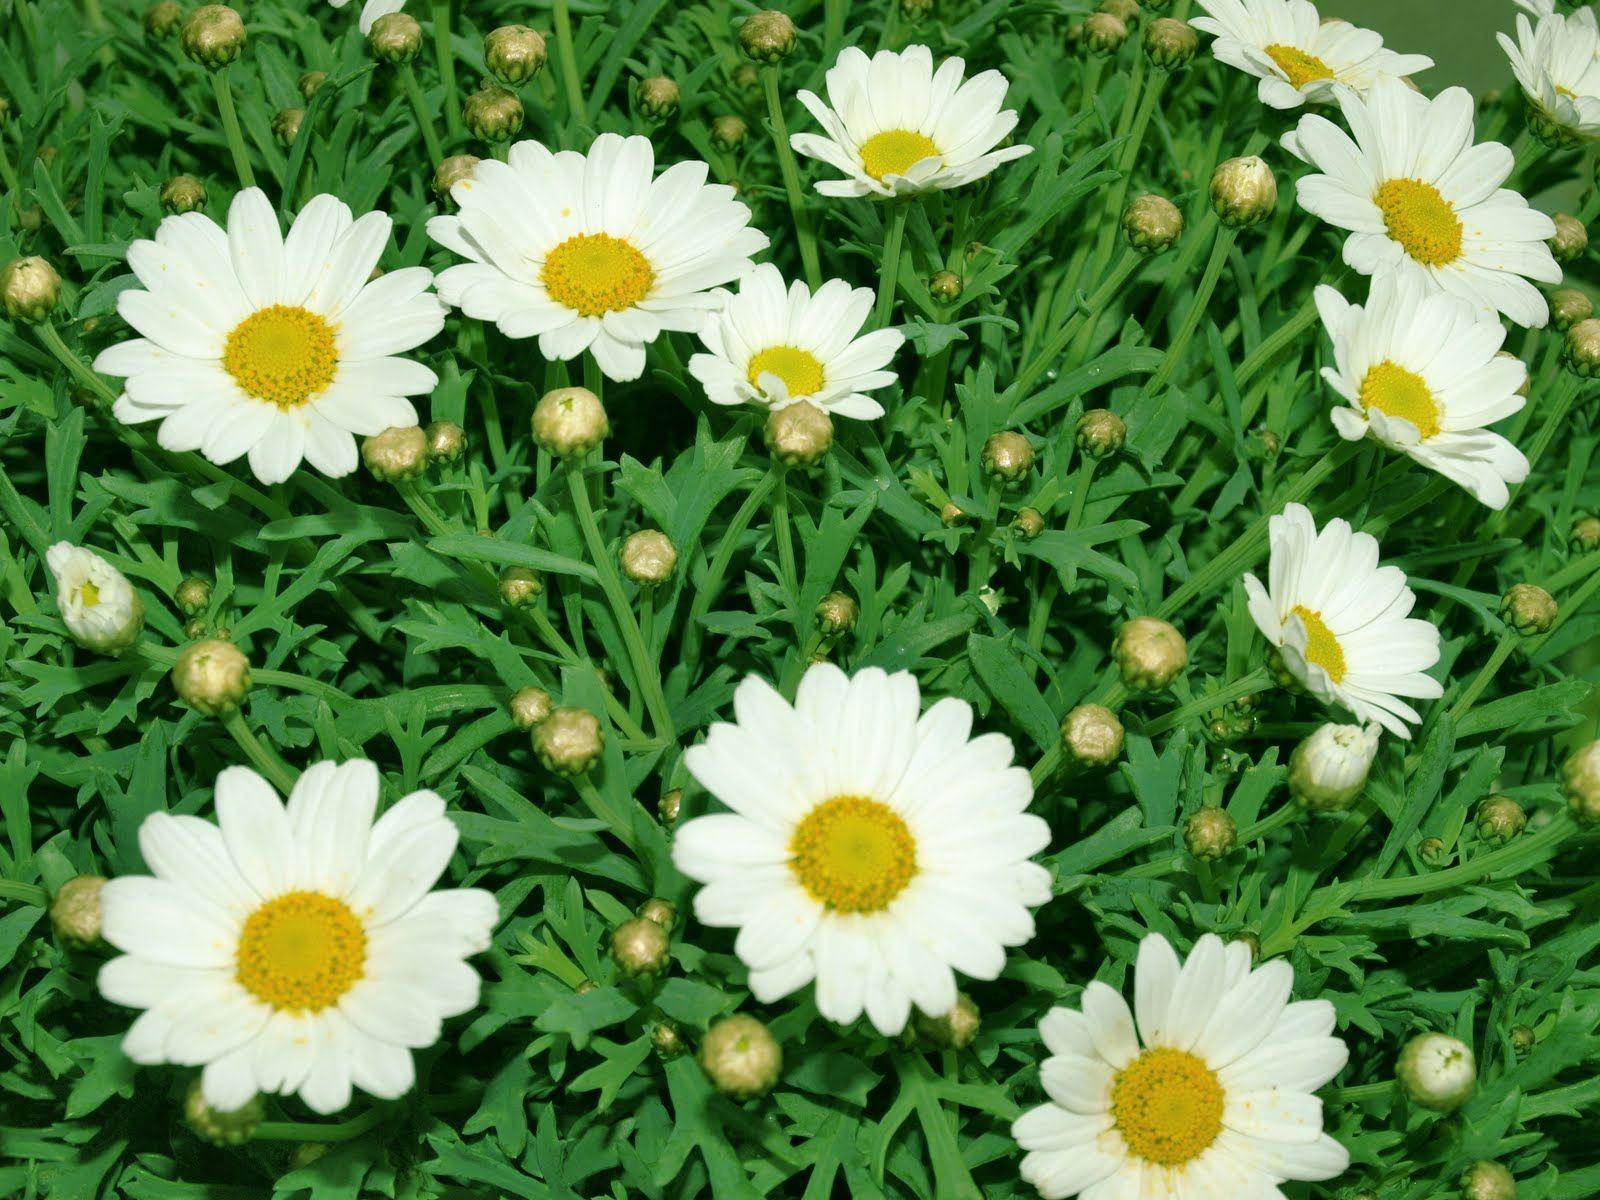 Collections of thousands of daisy flower wallpaper from all over the collections of thousands of daisy flower wallpaper from all over the world izmirmasajfo